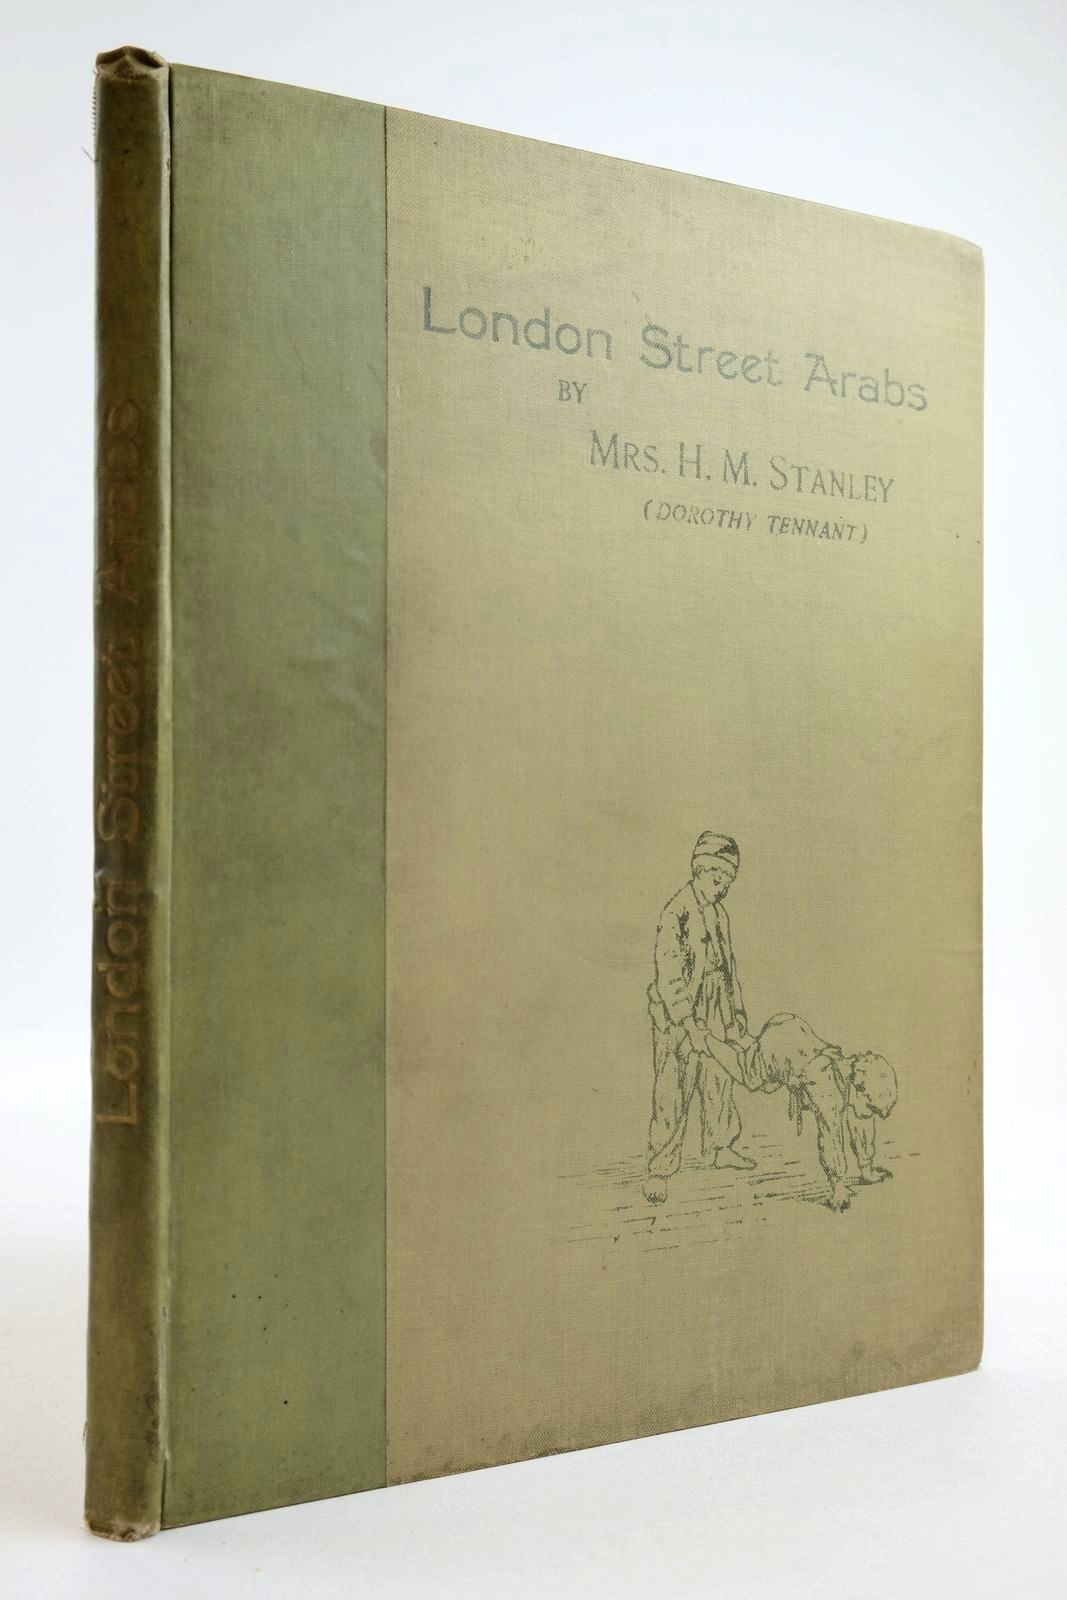 Photo of LONDON STREET ARABS written by Stanley, Mrs. H.M. illustrated by Tennant, Dorothy published by Cassell & Co. Ltd. (STOCK CODE: 2134151)  for sale by Stella & Rose's Books